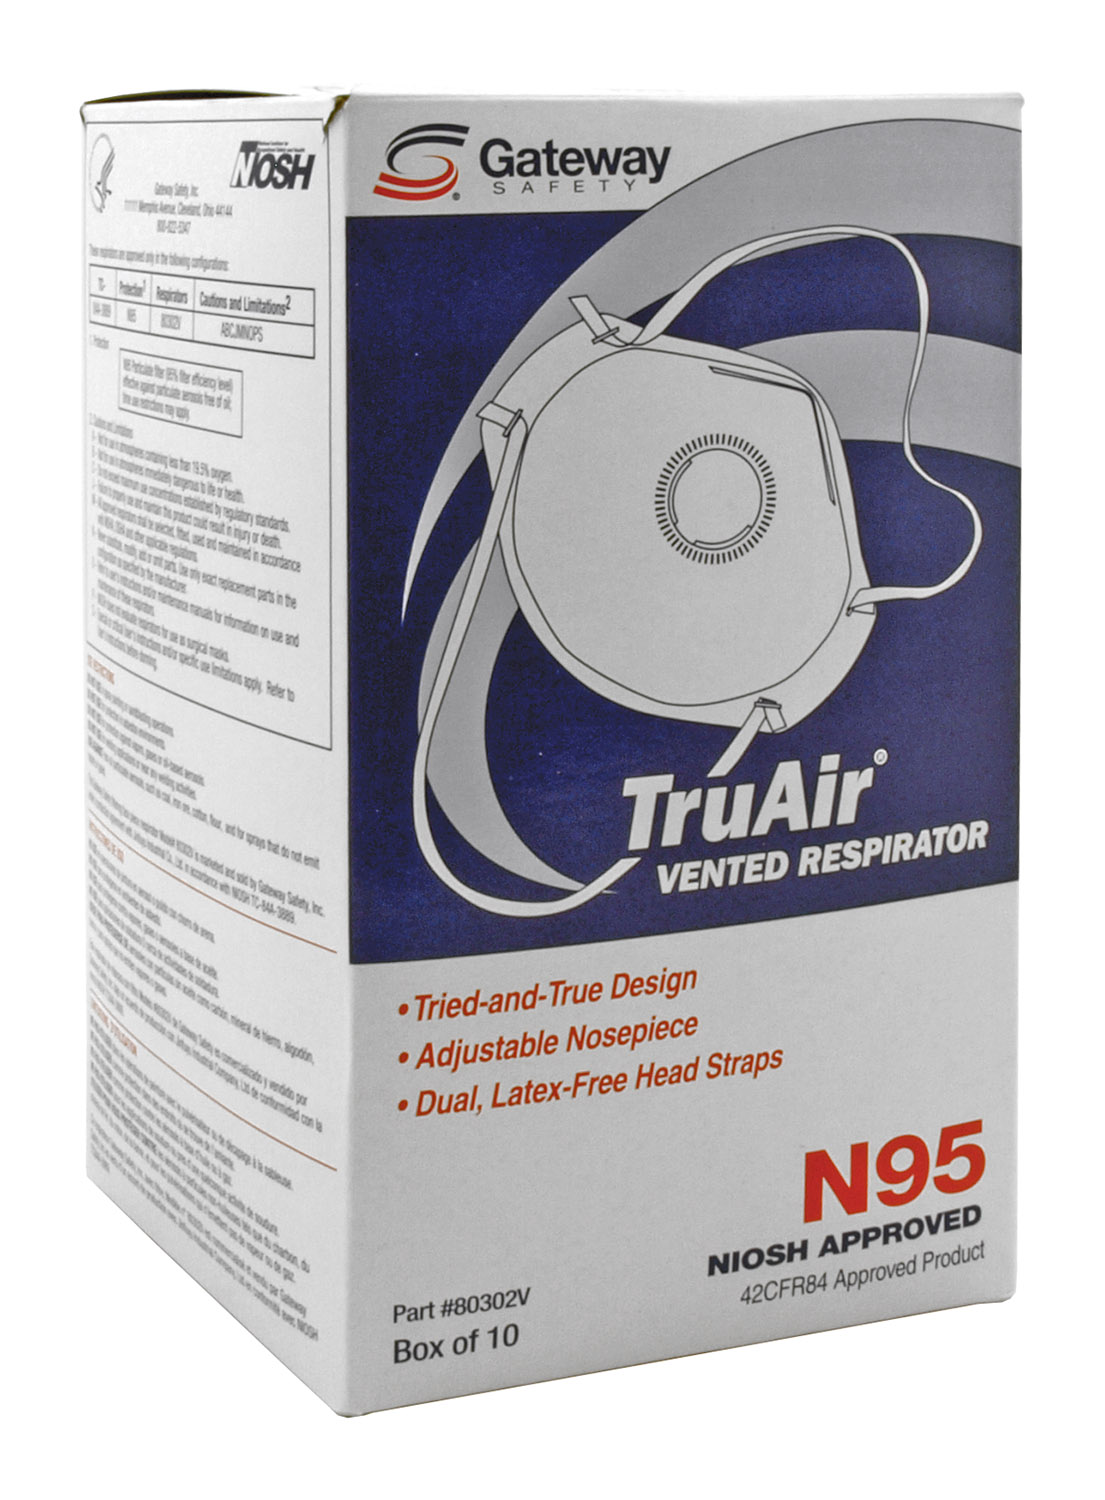 Box of 10 N95 Niosh Approved TruAir Vented Respirator Face Dust Mask Covering - Gateway Safety